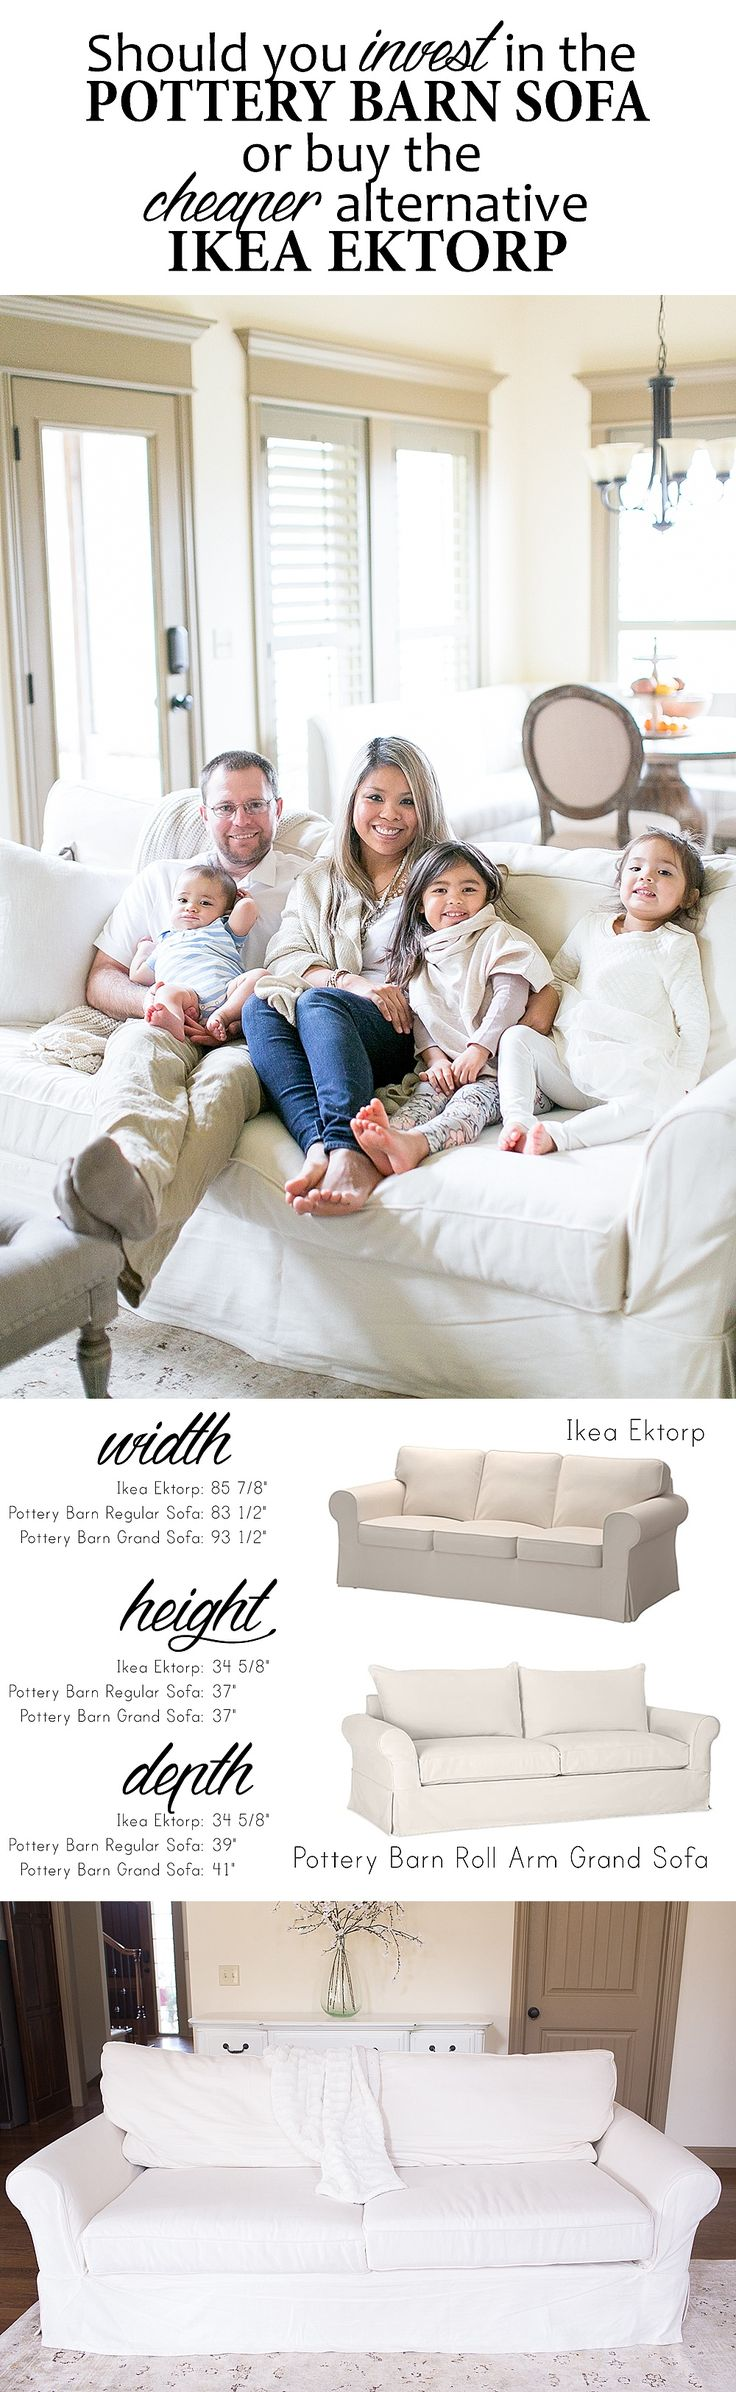 Full detailed review of the Pottery Barn Grand Sofa with pictures of the sofa with all their kids on it! Includes a side by side comparison on dimensions and price. Great read!